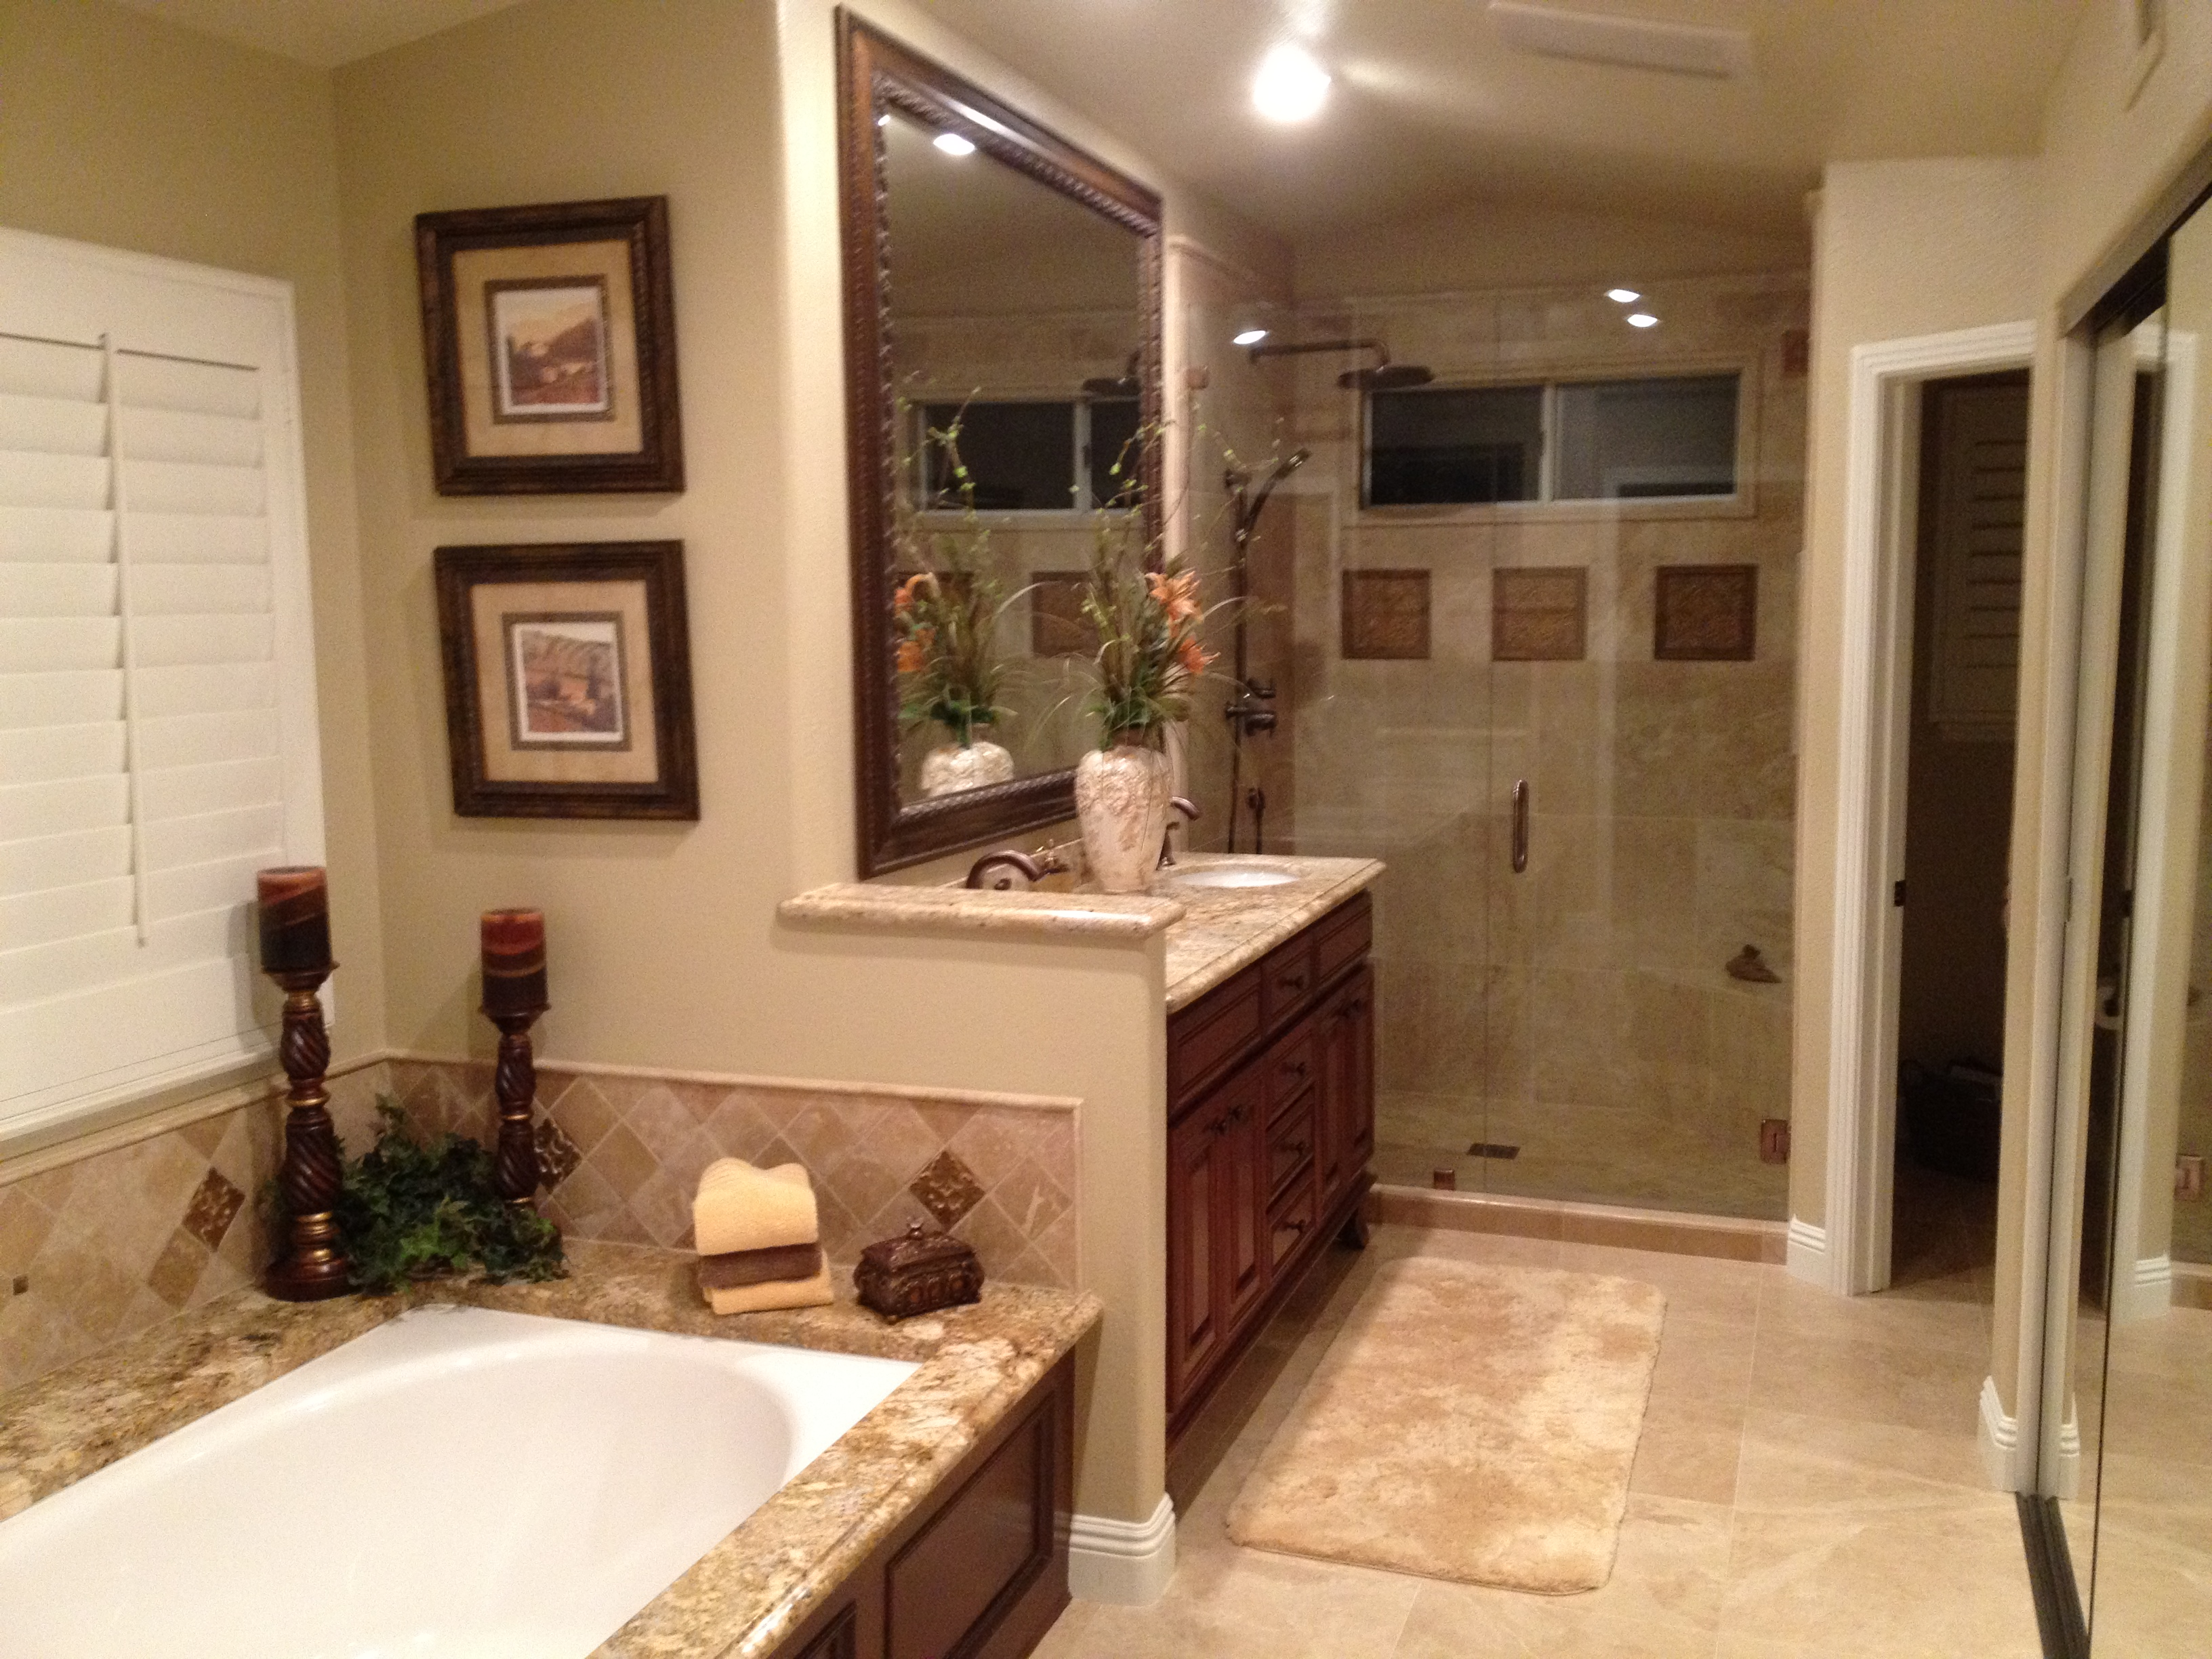 Orange County Bathroom Remodeling Kitchen Remodeling Home Design Build Contractors